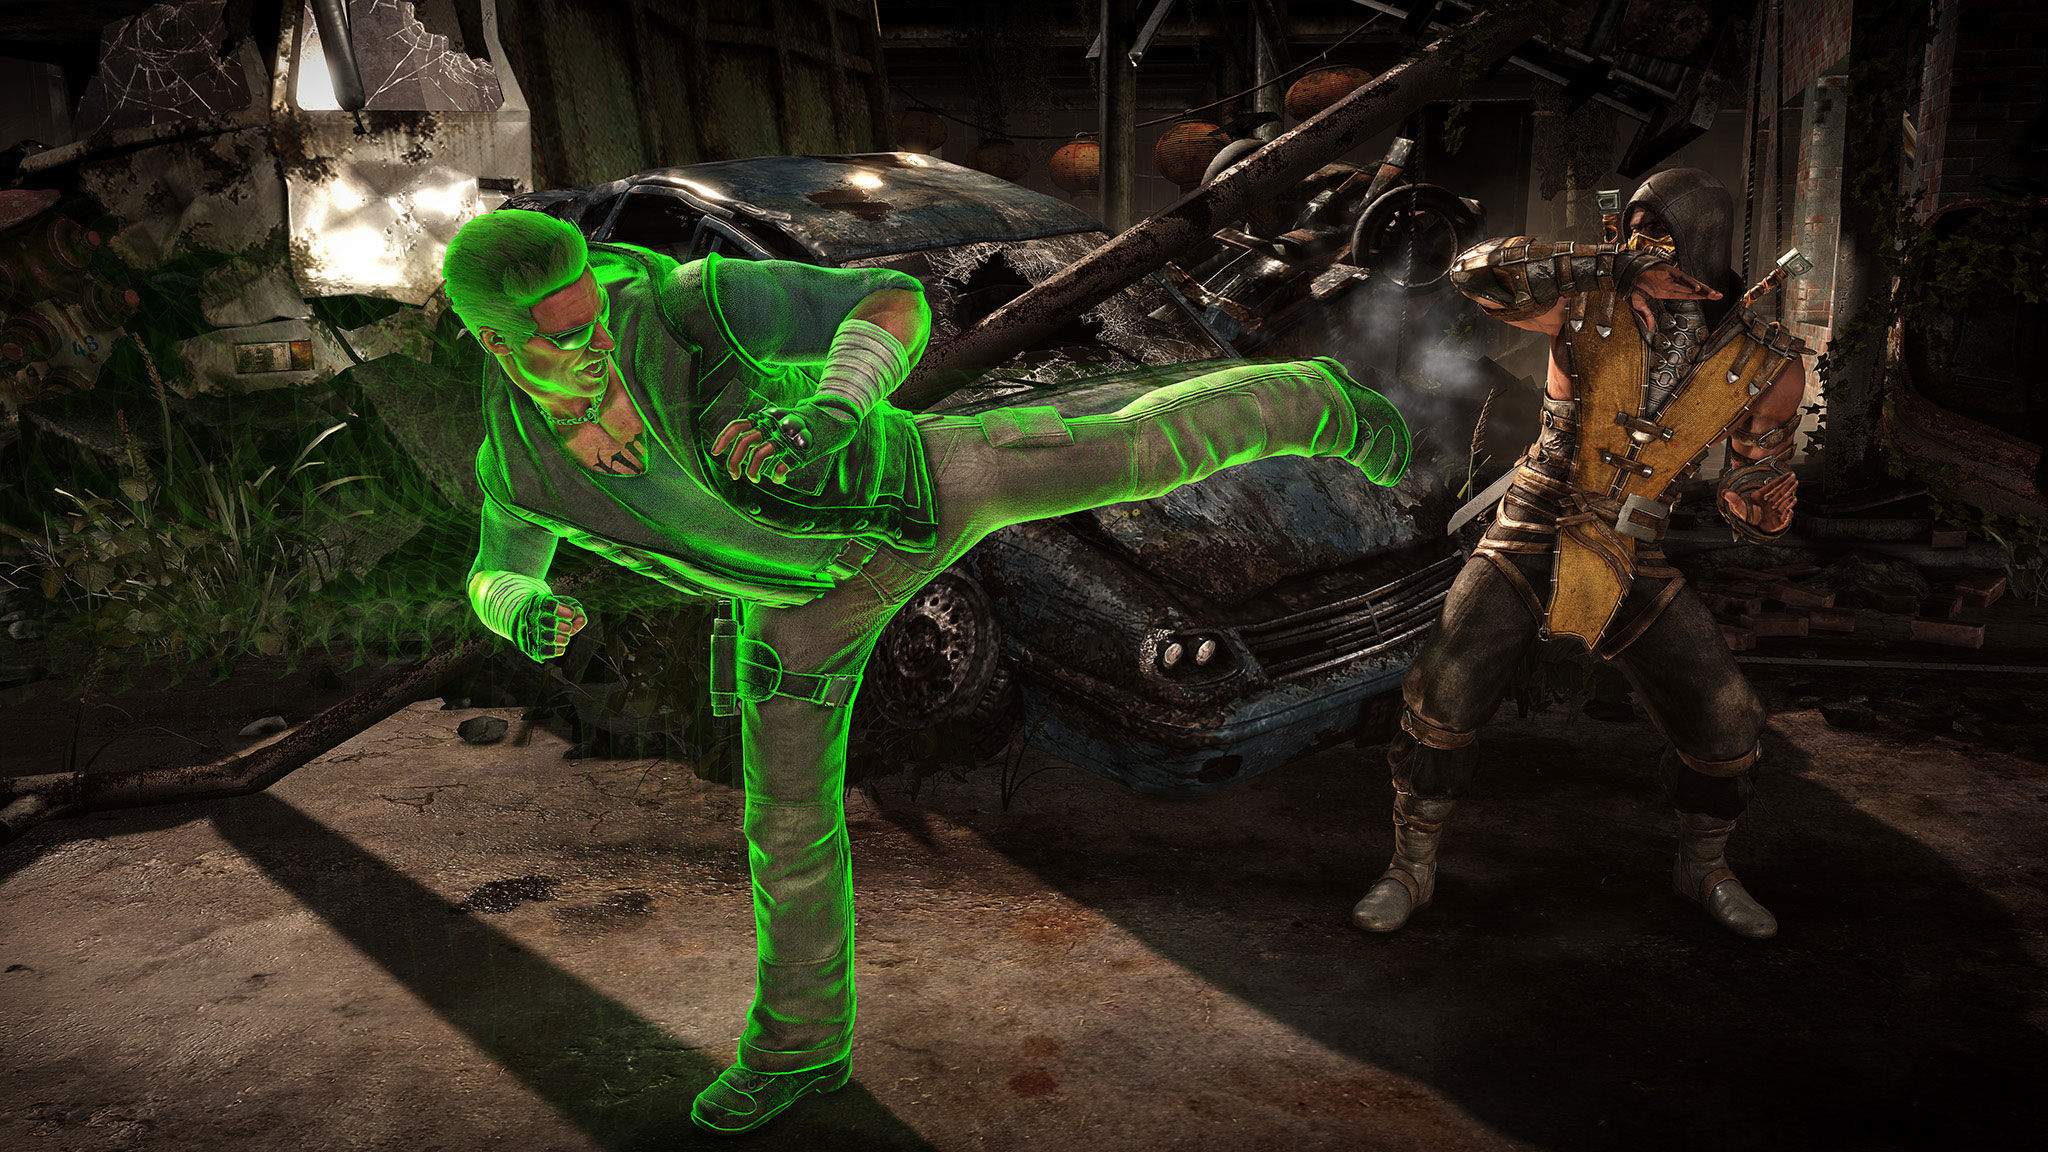 Mortal Kombat X Johnny Cage And Sonya Blade Trailer Sneaks In A Third Character Reveal #32632